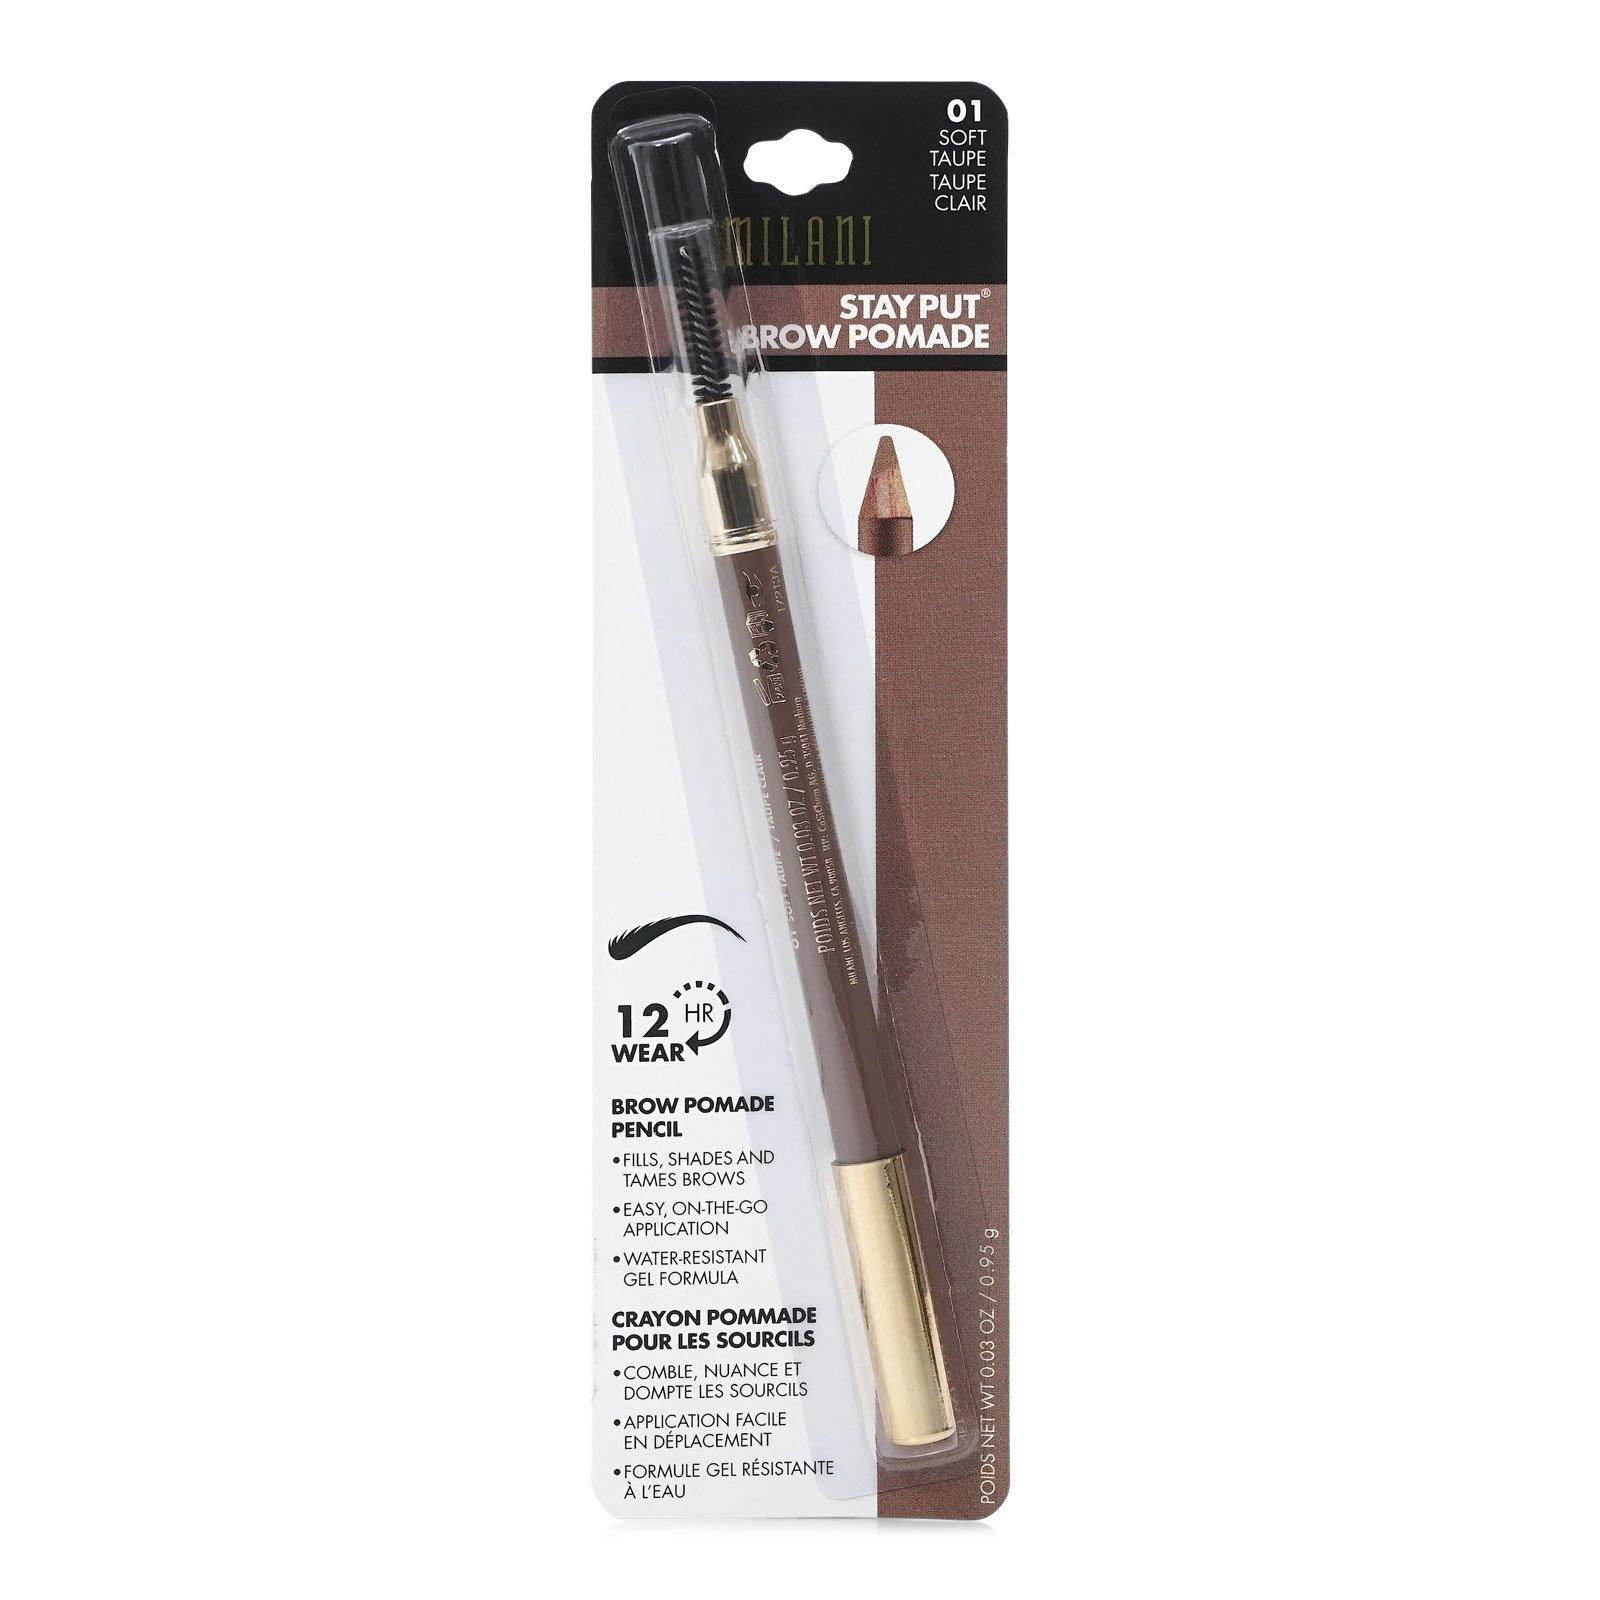 MILANI STAY PUT BROW POMADE PENCIL - SOFT TAUPE (24/cs)